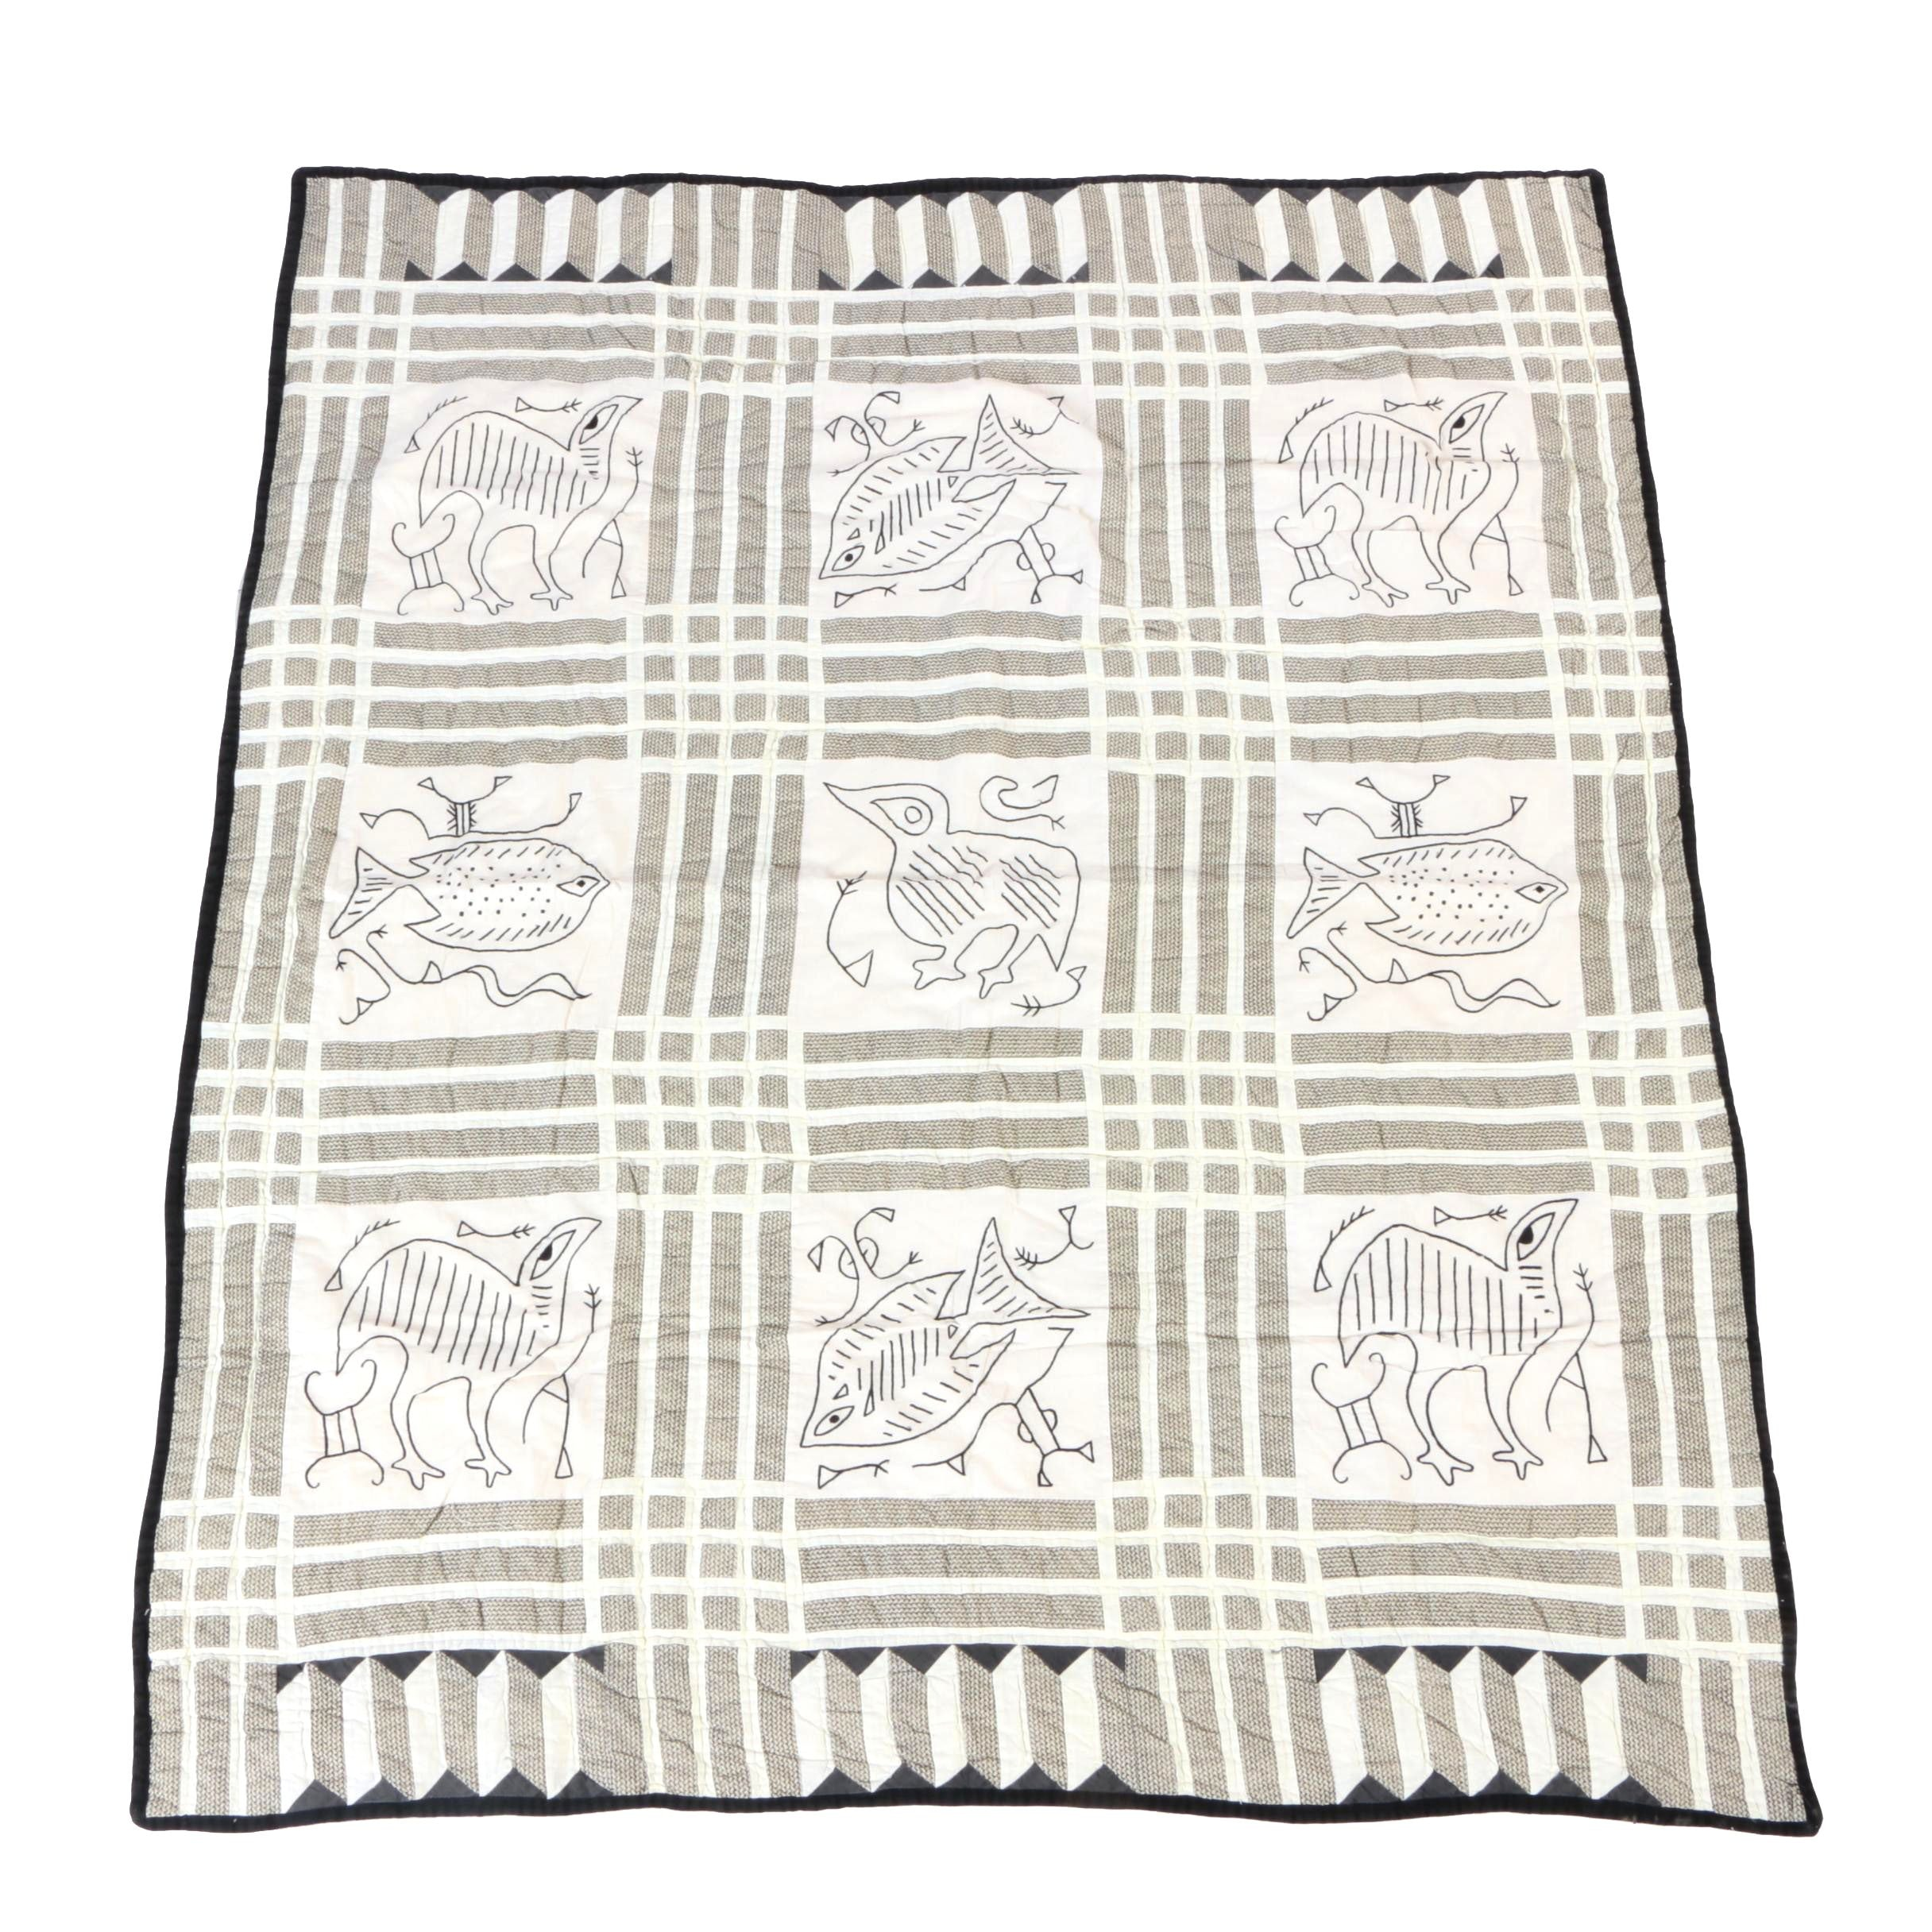 Hand Quilted Black and White Hieroglyphic Quilt